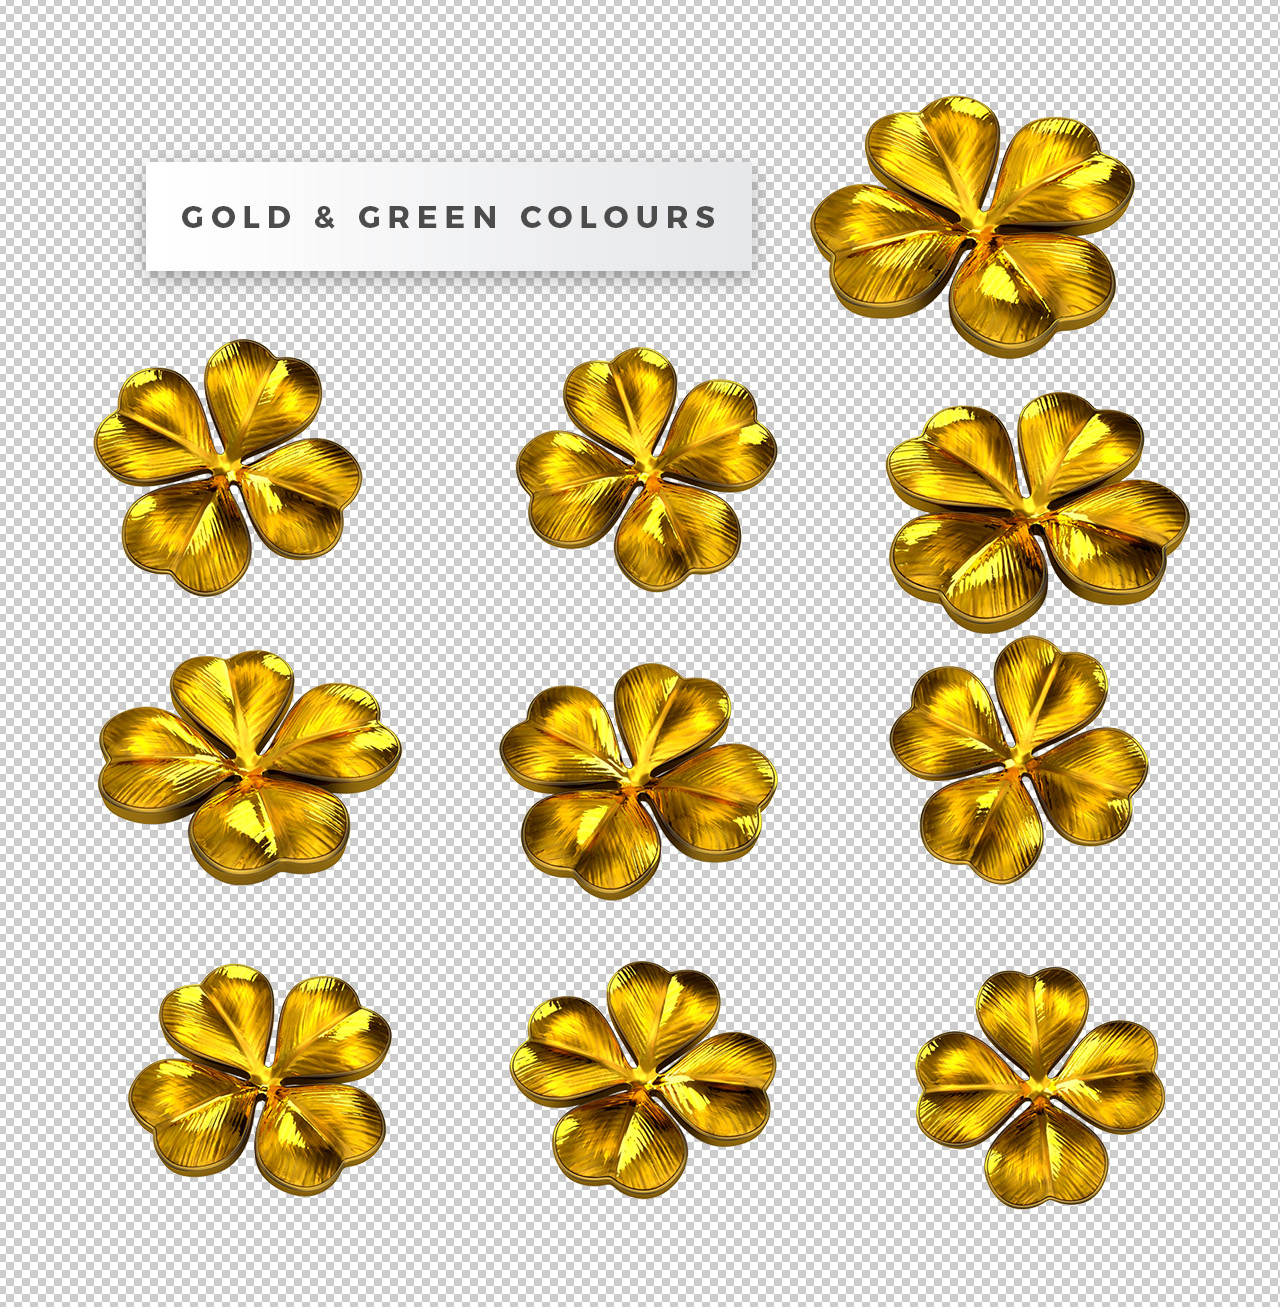 Free 3D Clover PNGs - Gold Version